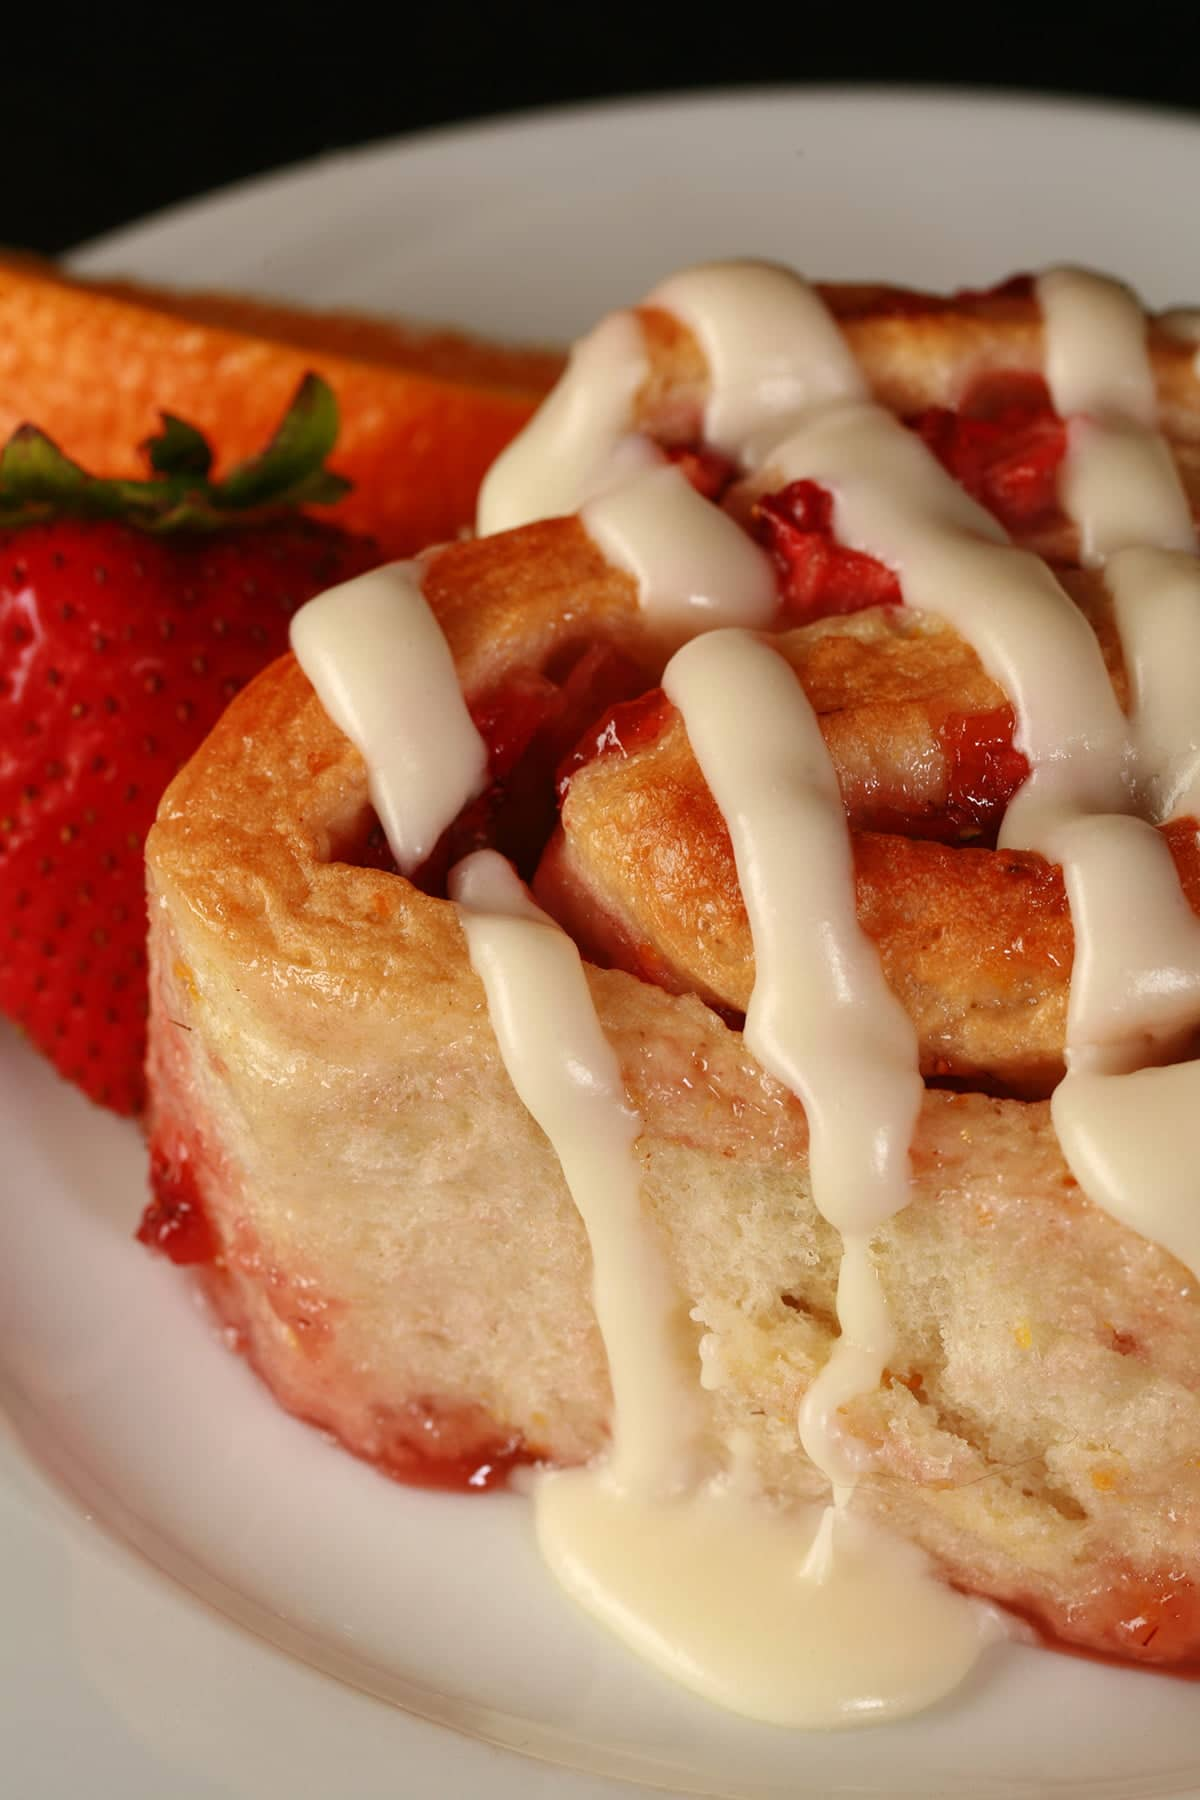 An orange strawberry roll on a white plate, with a fresh strawberry and an orange slice next to it